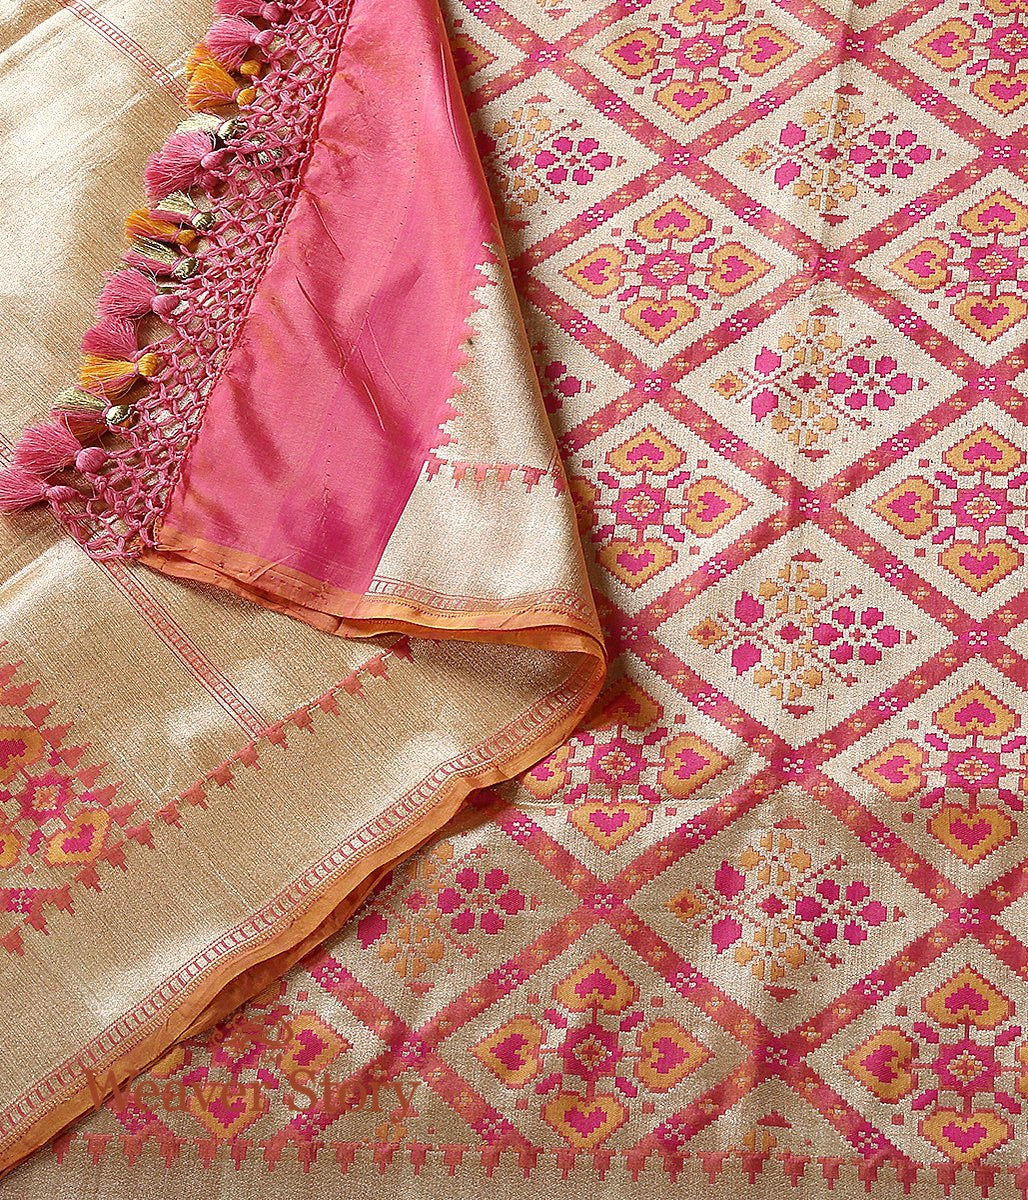 Handwoven Peach Pink Banarasi Patola Dupatta with Zari Base